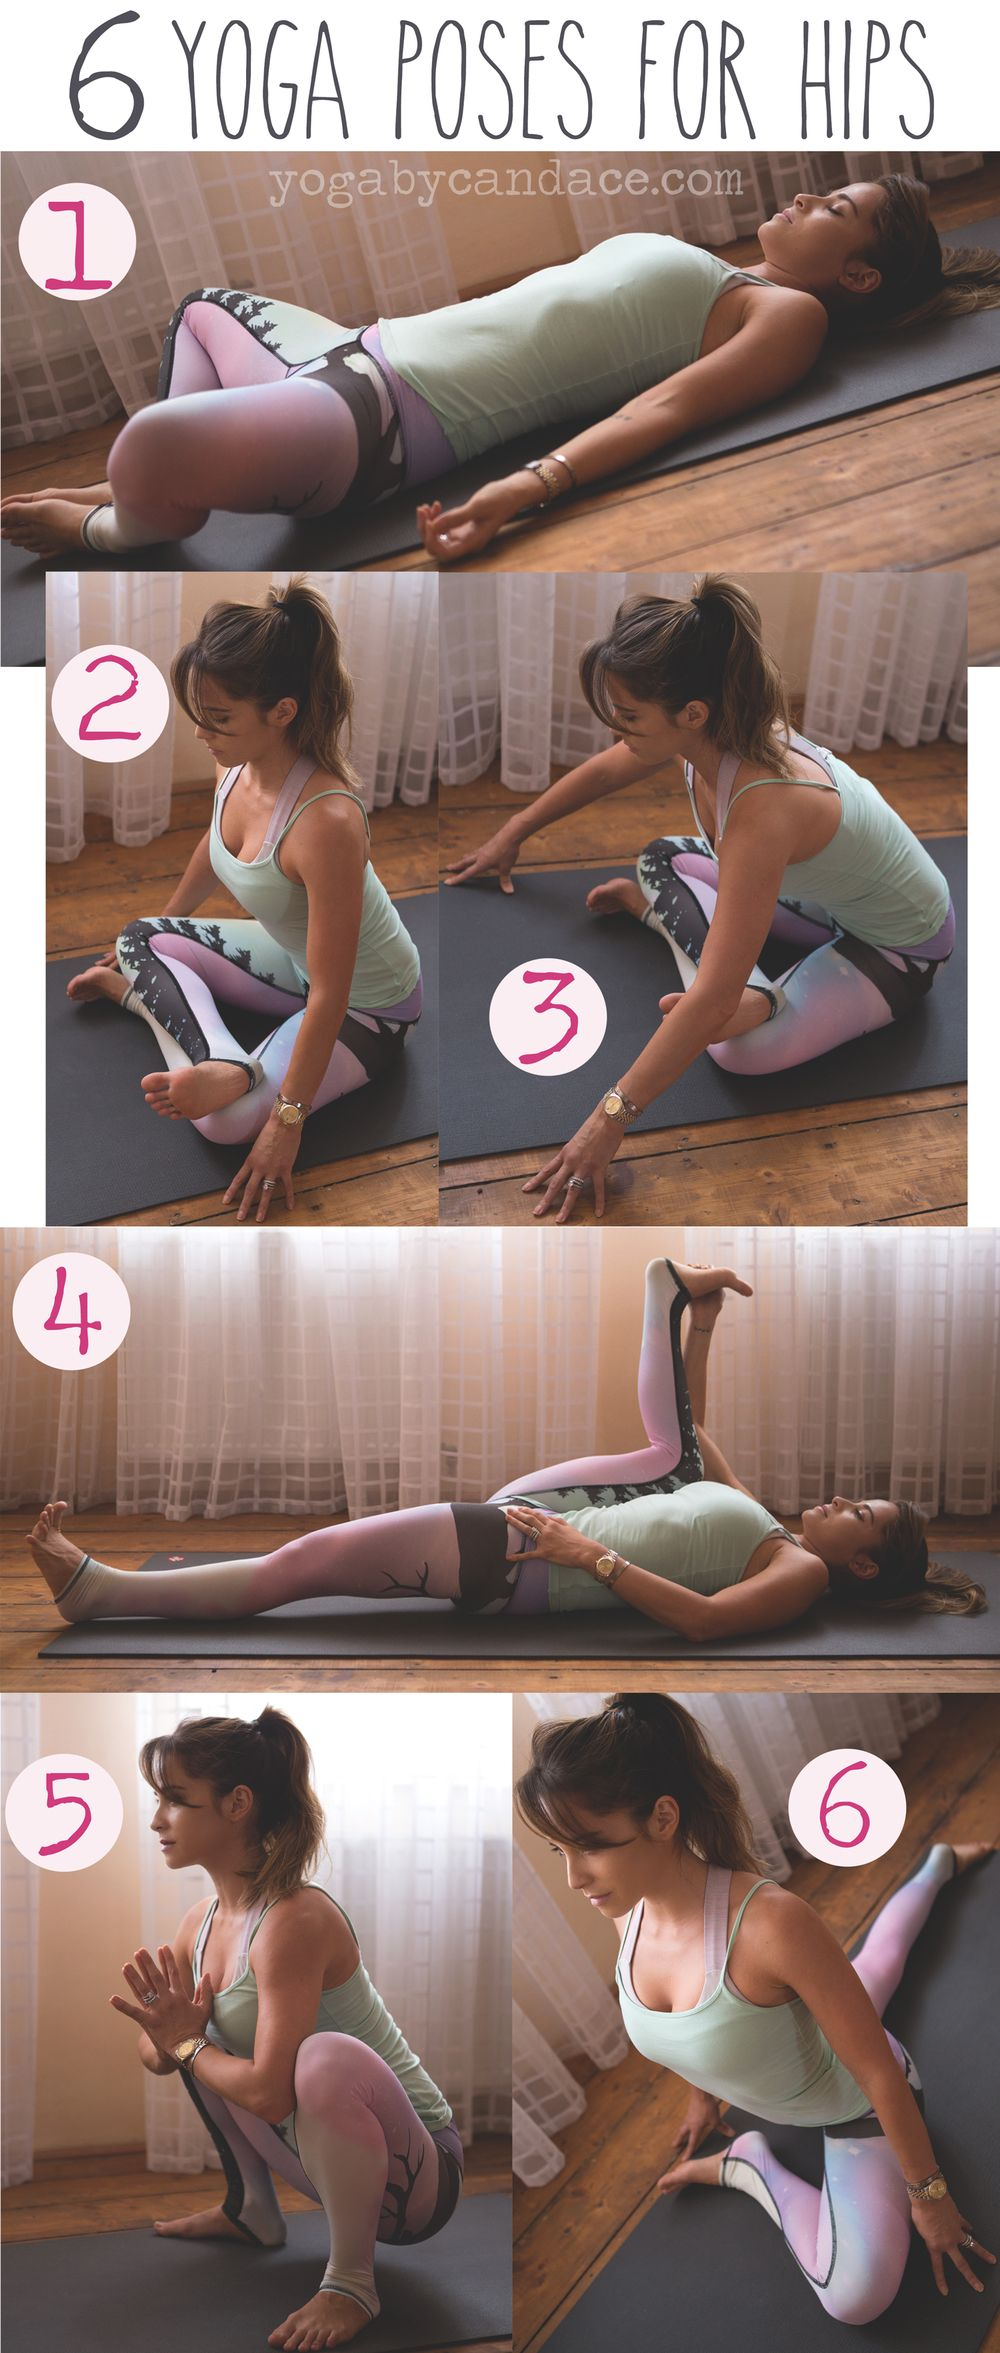 If you're someone whose job requires sitting for long periods of time, this sequence might just be your new favorite thing. All six of these yoga poses will help to gently open the hips, which may release tension in the low back and legs. Anyone up for a little lunch break yoga? Here we go.